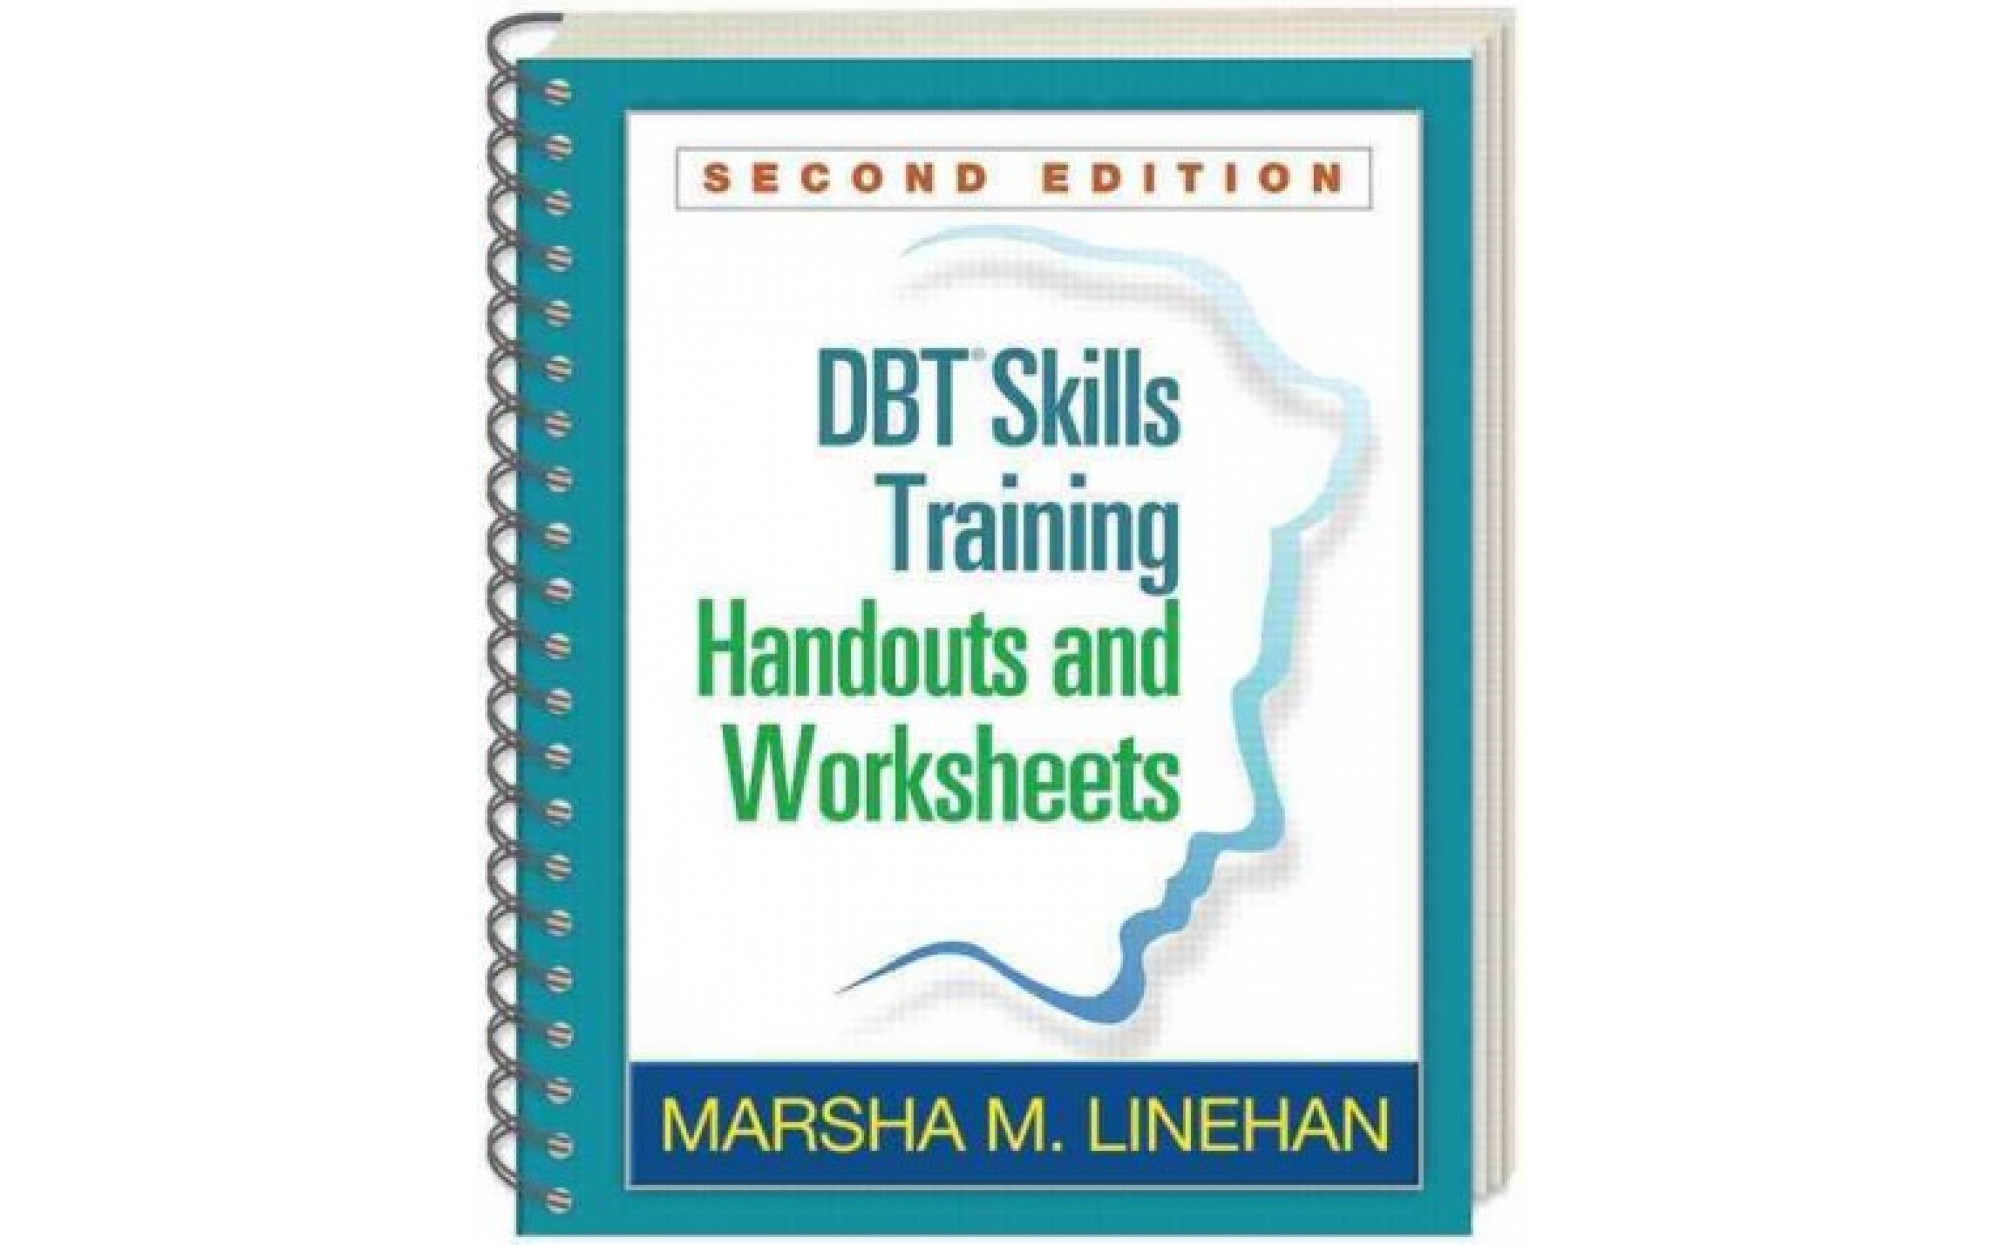 Dbt Skills Training Handouts And Worksheets Books